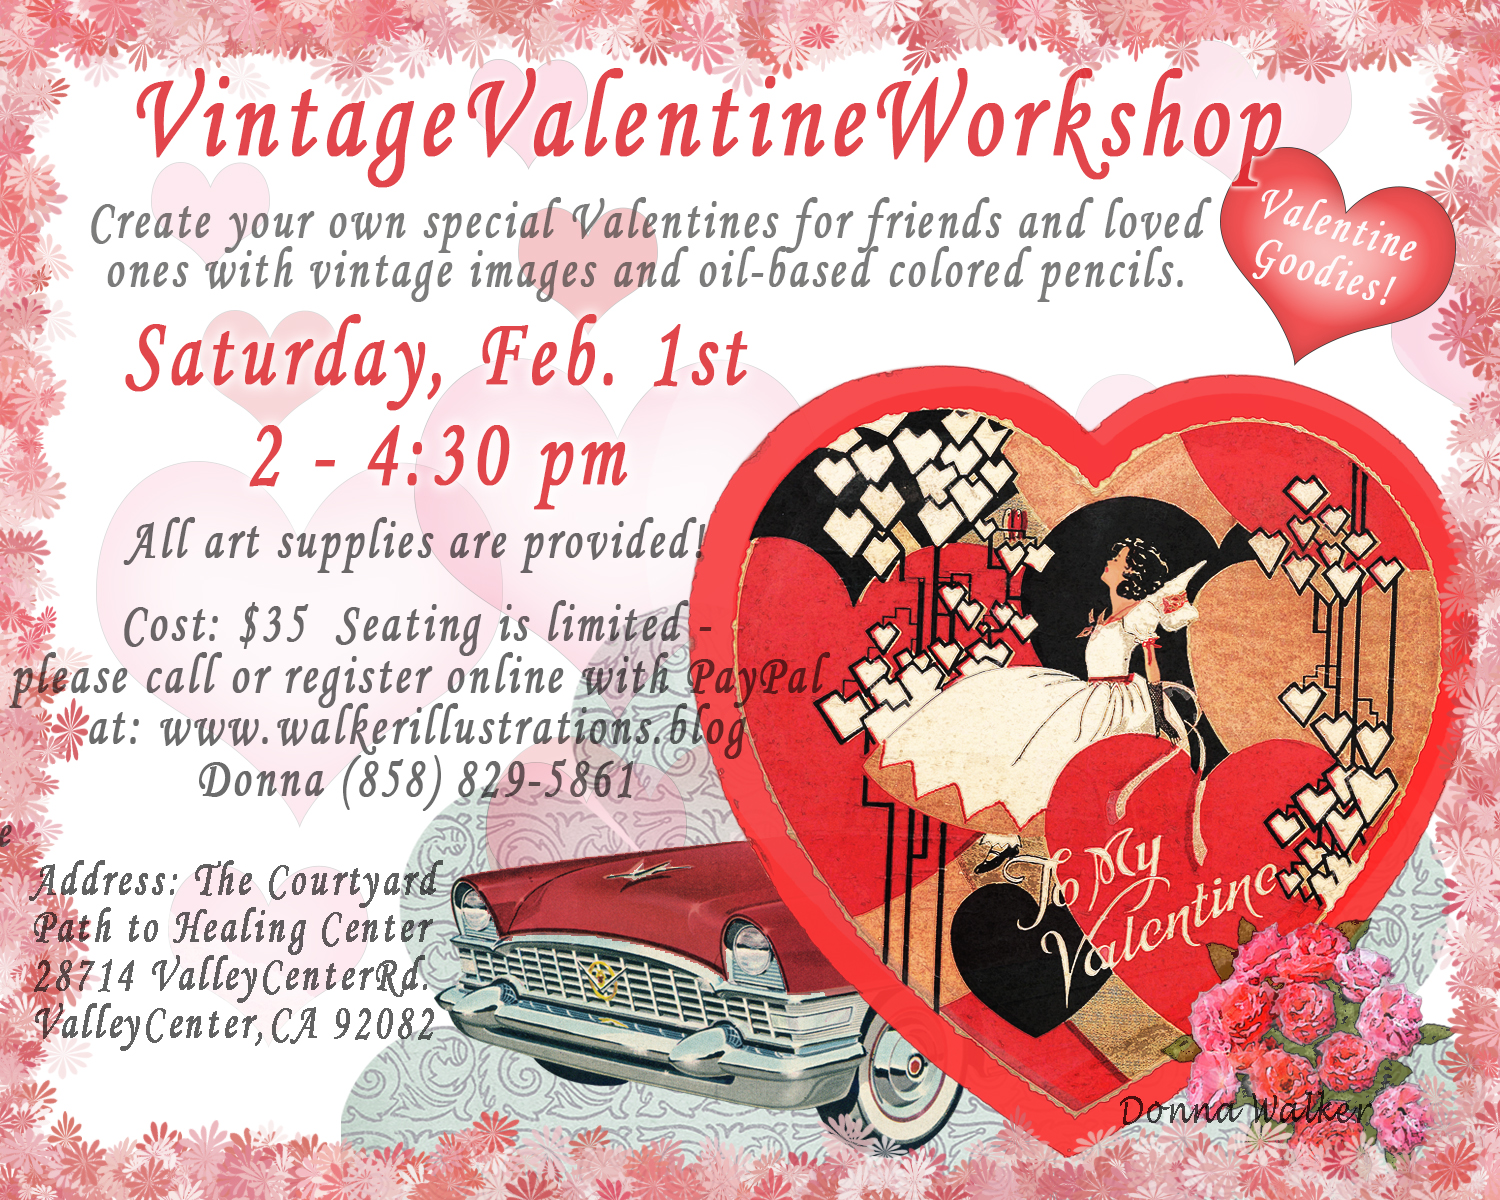 Vintage Valentine Workshop